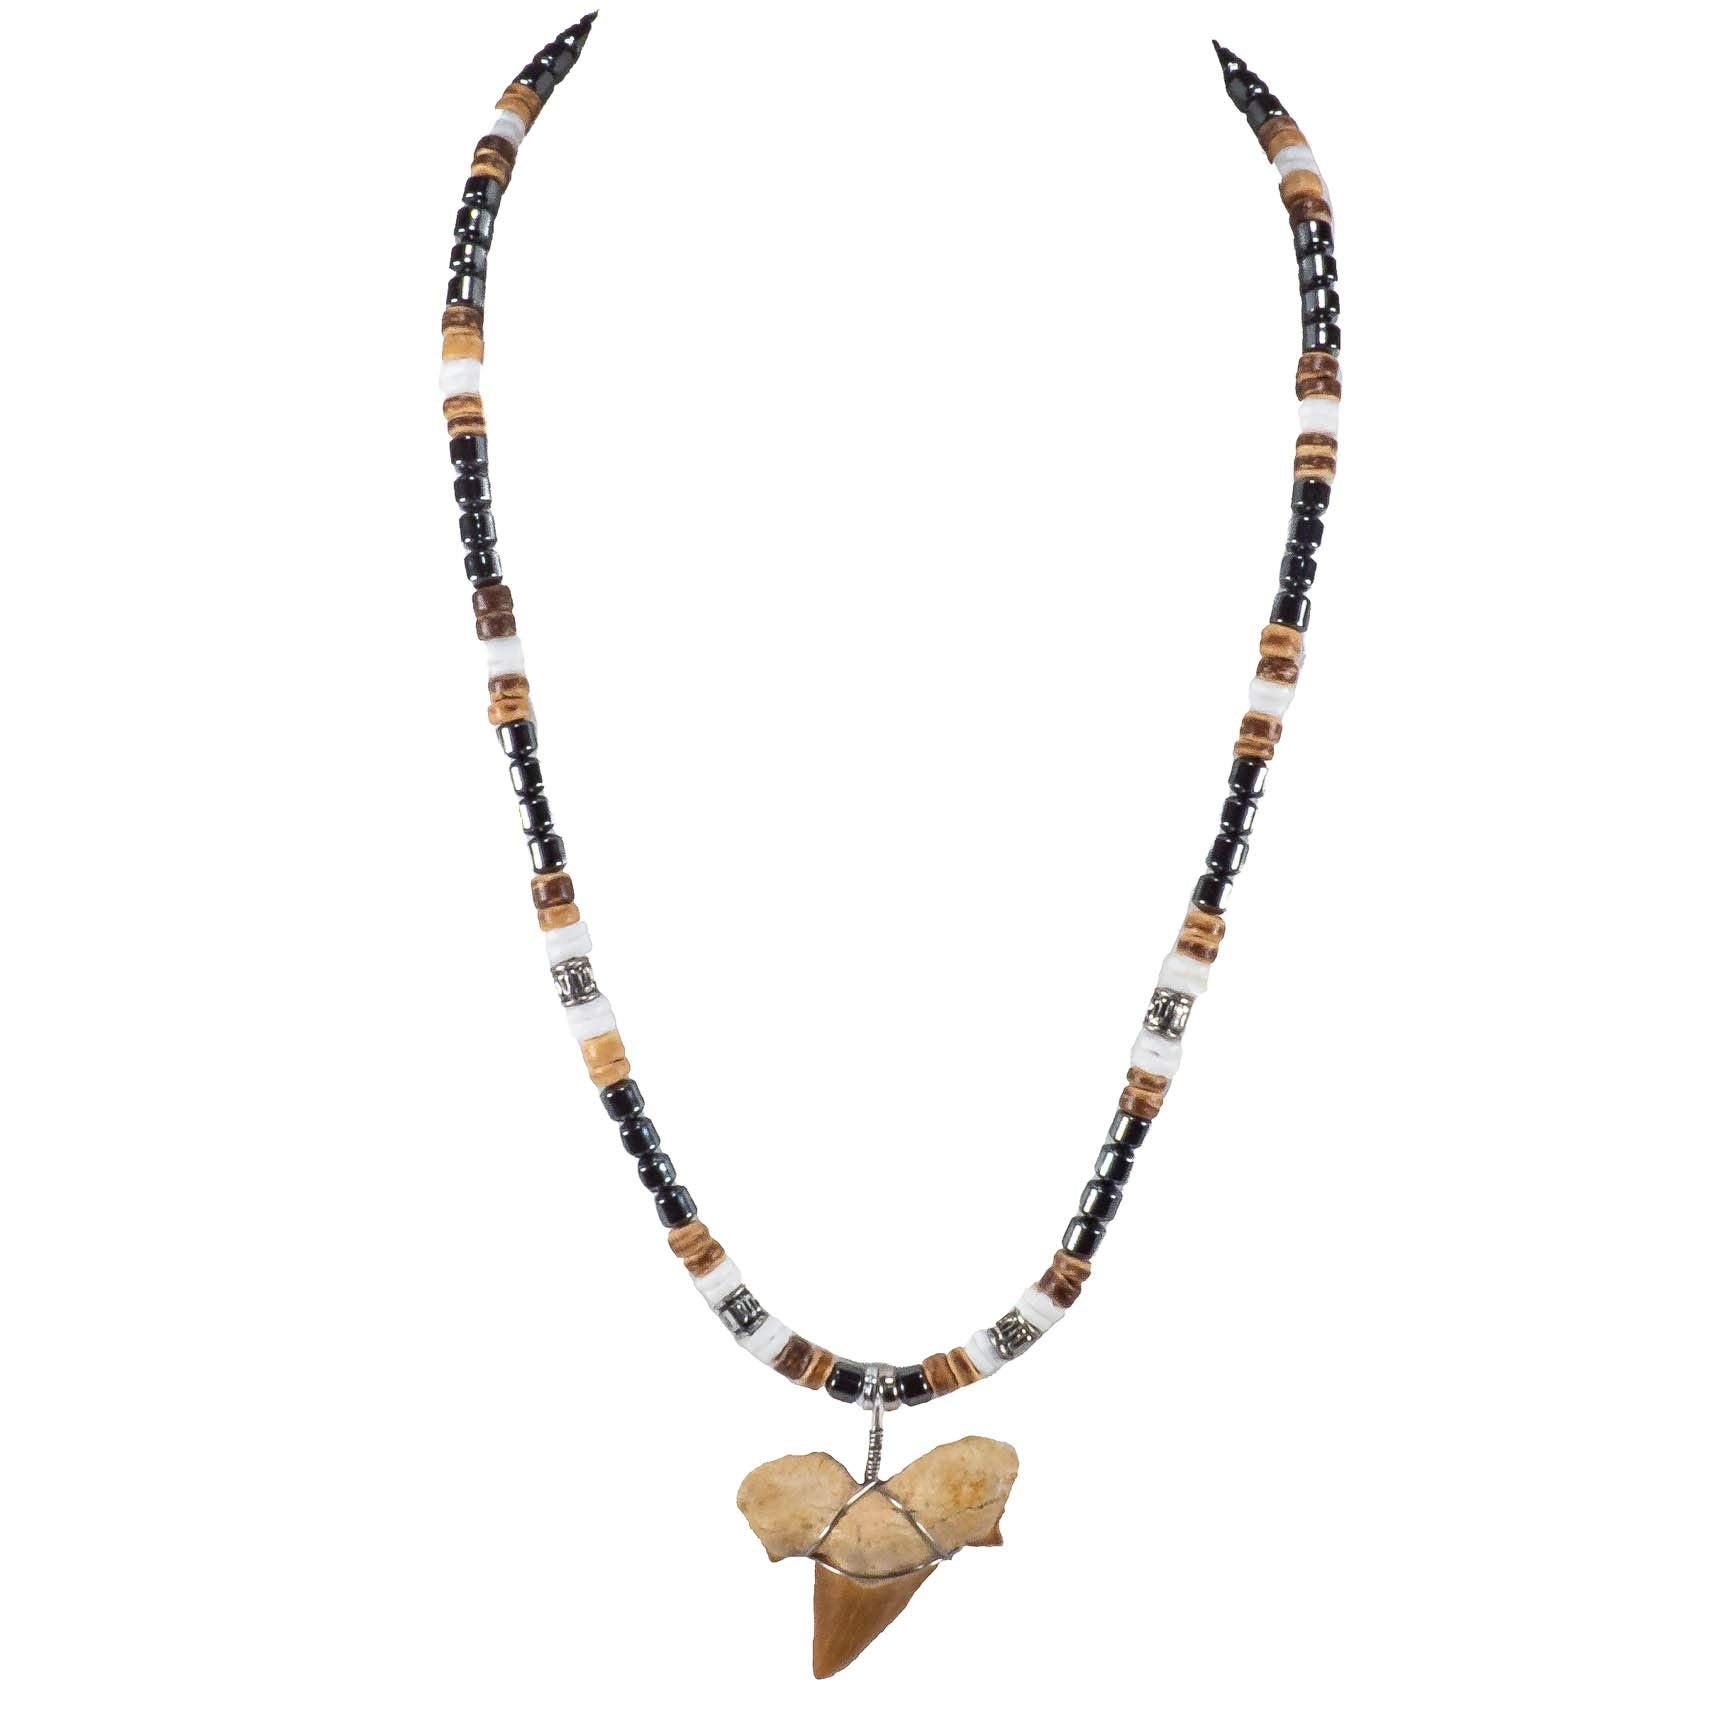 "1¼""+ Shark Tooth Pendant on Hematite, Coconut & Puka Shell Beads Necklace"